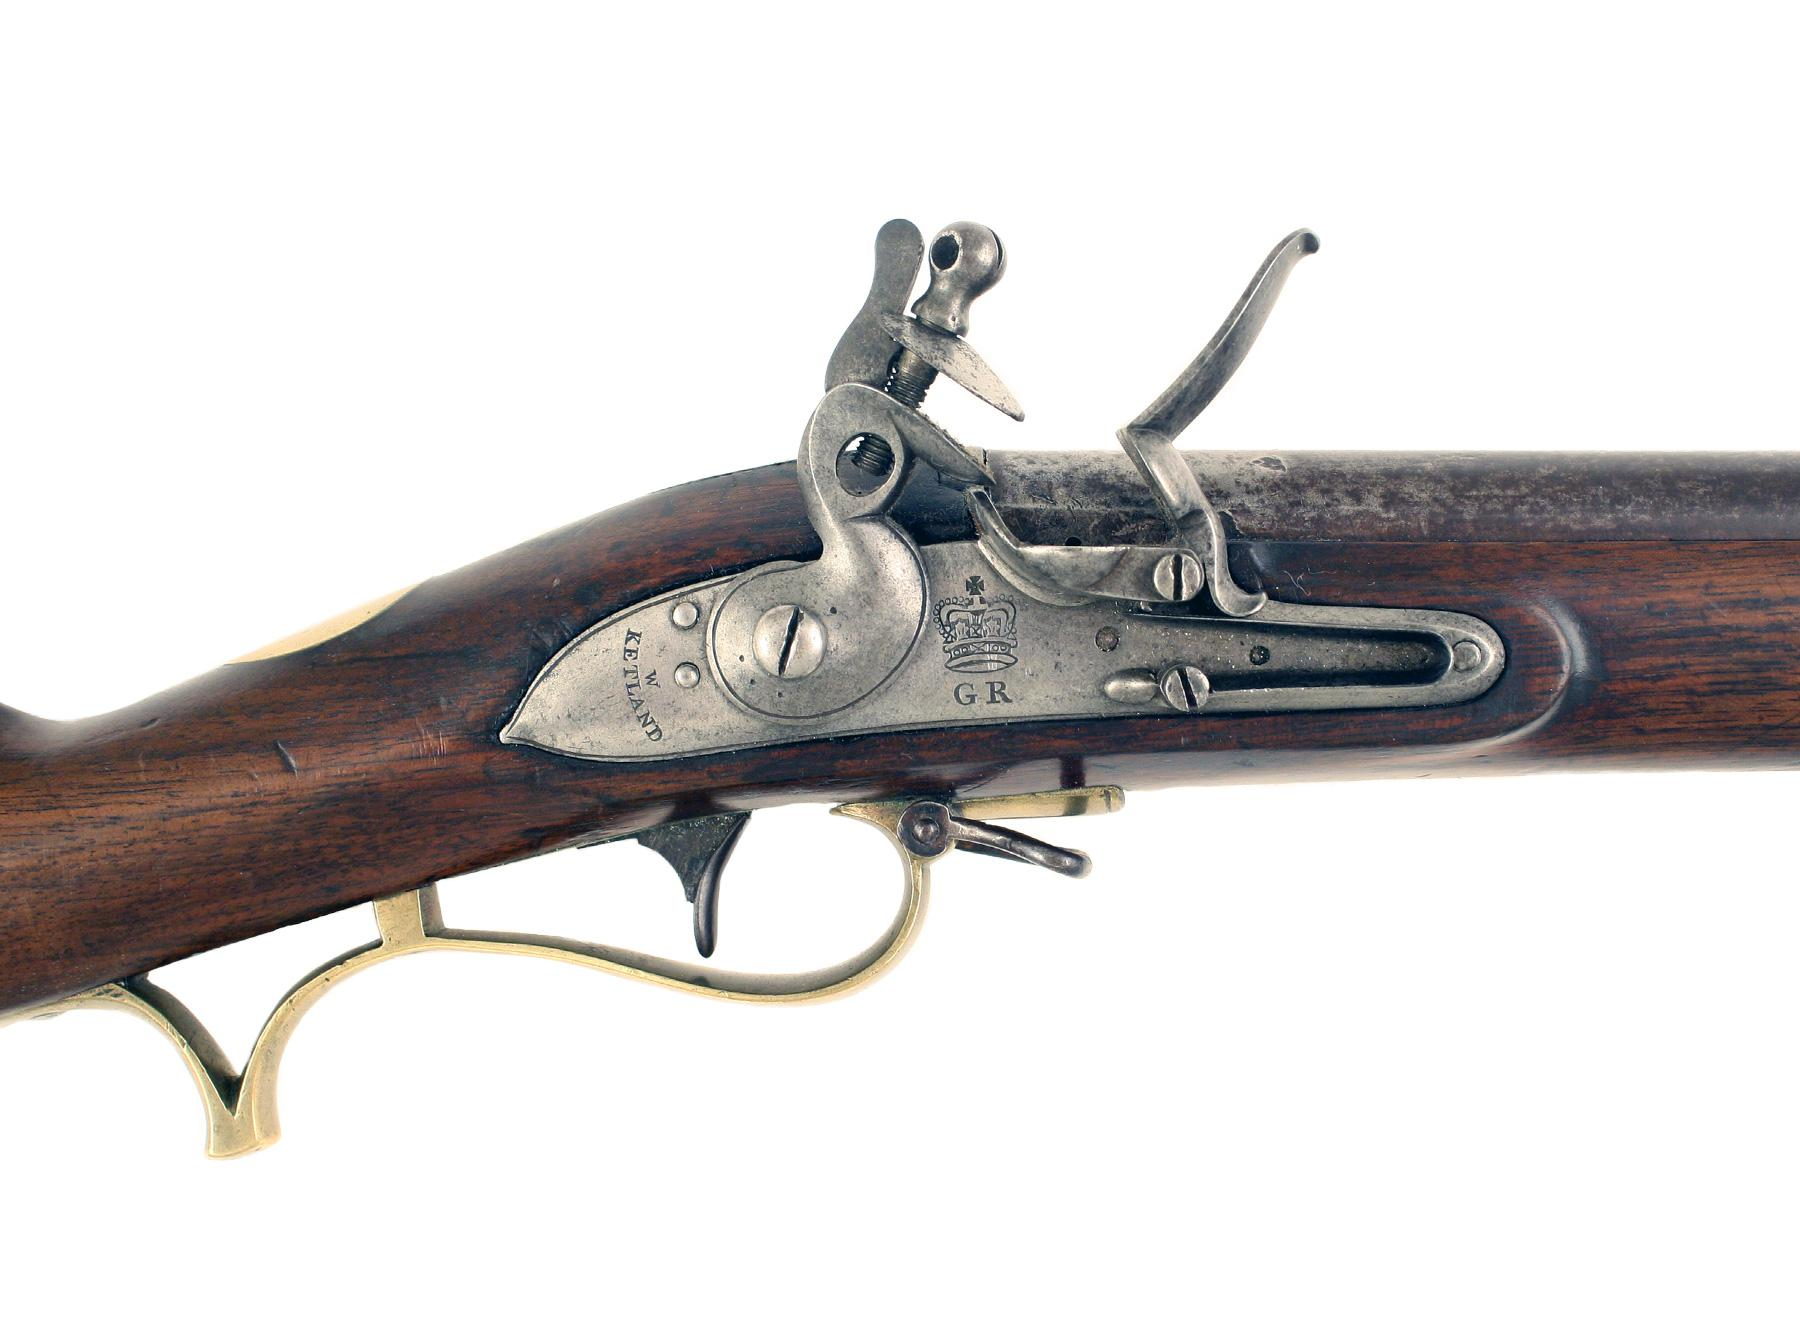 A Baker Rifle